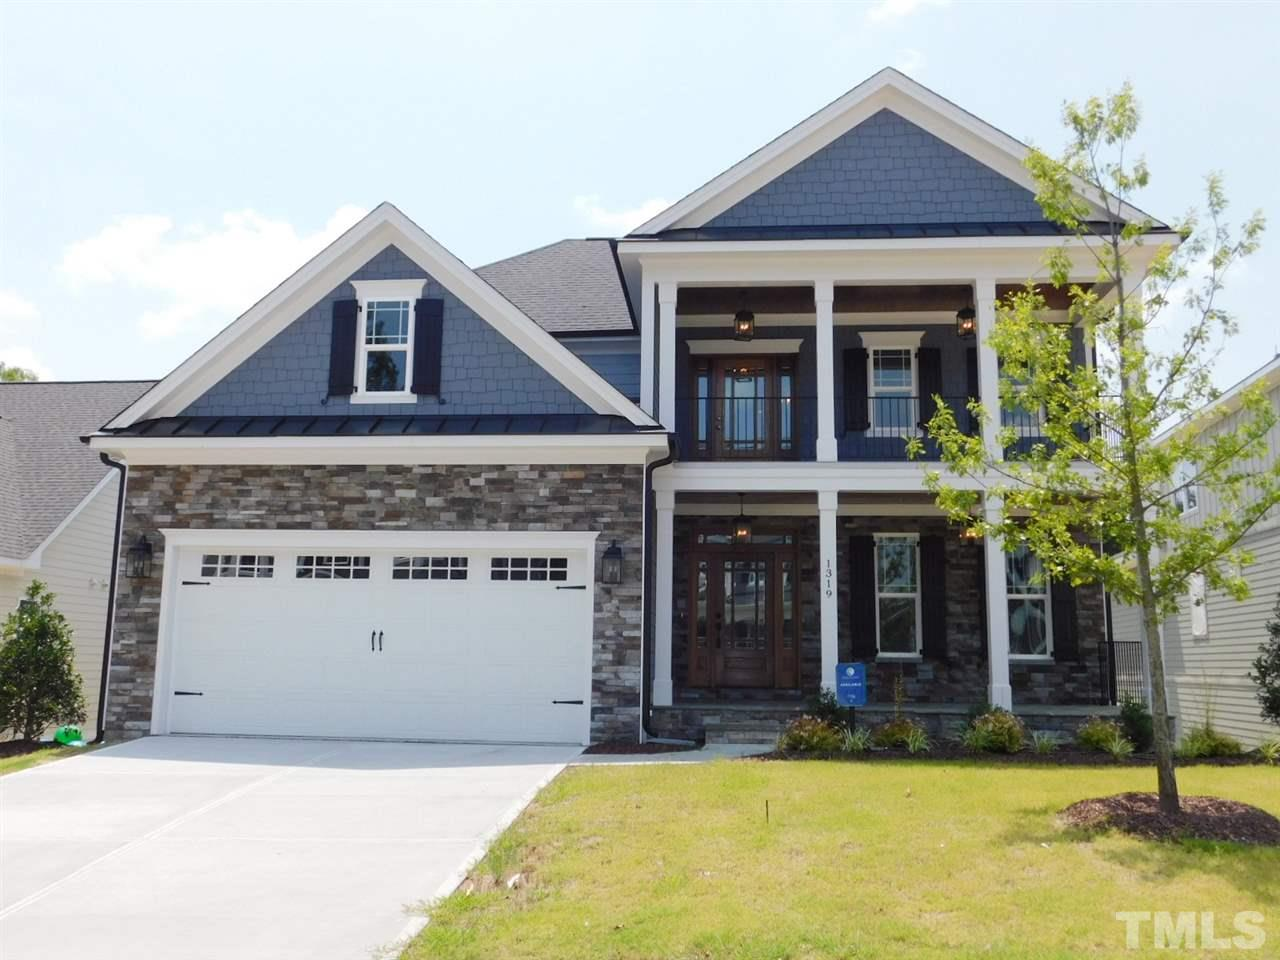 Stone Accented Custom Home w/Double Front Porches & Finished Basement! Coffered Fam Rm w/Double Sided FP to Scrn Porch! Gourmet Kit w/ SS Appls, & Quartz! Coffered Din Rm w/Tall Paneling! 1st Flr Master w/Accent Wall & Impressive Bath! Loft/Bonus, 2 Bdrms w/Bths, Pocket Office, & Semi Finished Storage on 2nd! Huge Great Rm & 4th Bdrm w/Bth in Basement! Tons of Storage! Tons! Tankless H2O! Intercom, Speaker & Security Pre Wire! Elevator Shaft! Extensive Trim Package! Hardwood Flrs! Large Level Backyard!